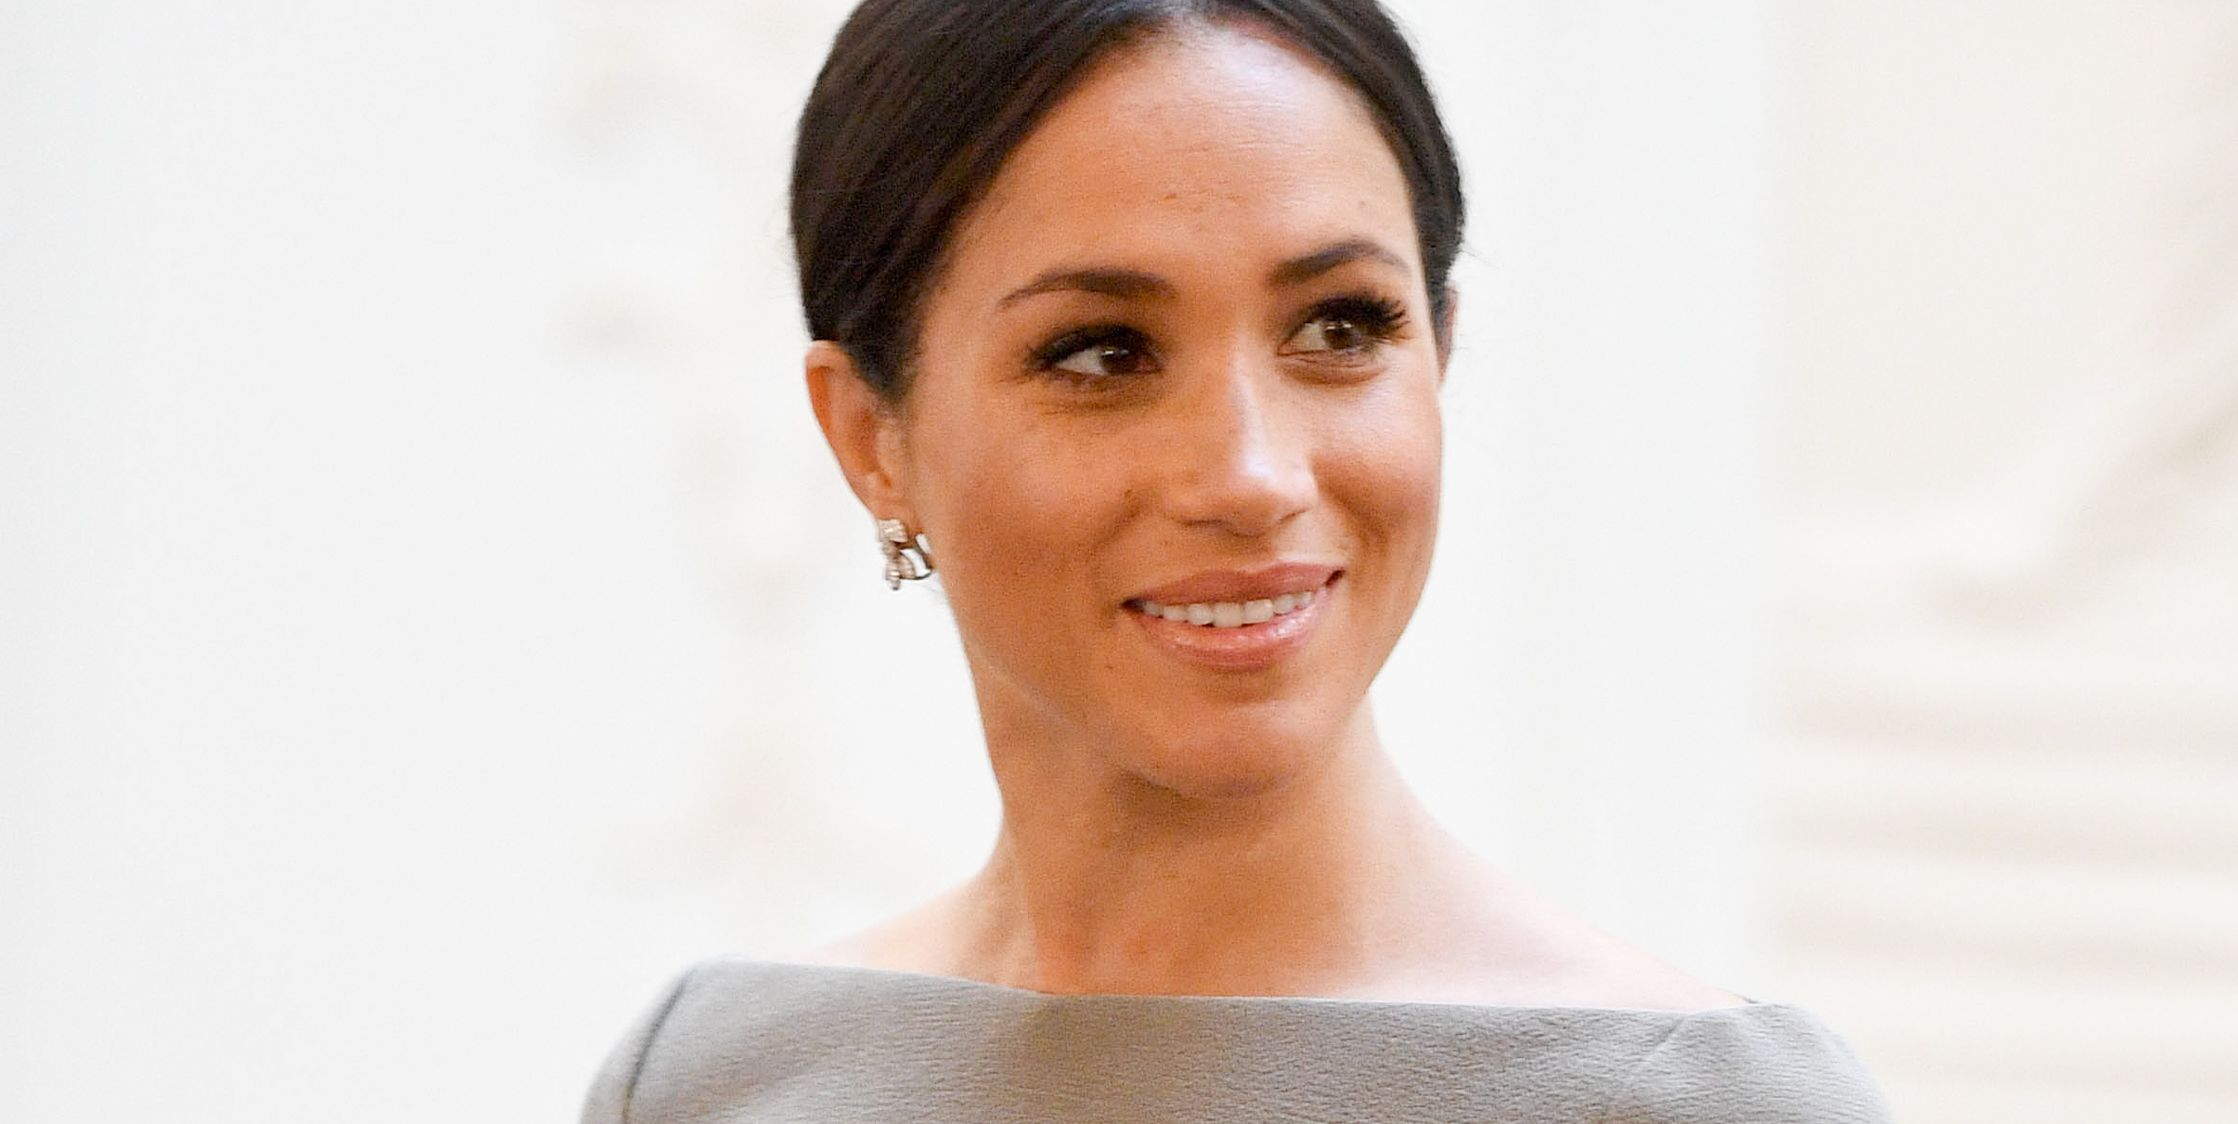 Meghan Markle televisie interview royal wedding